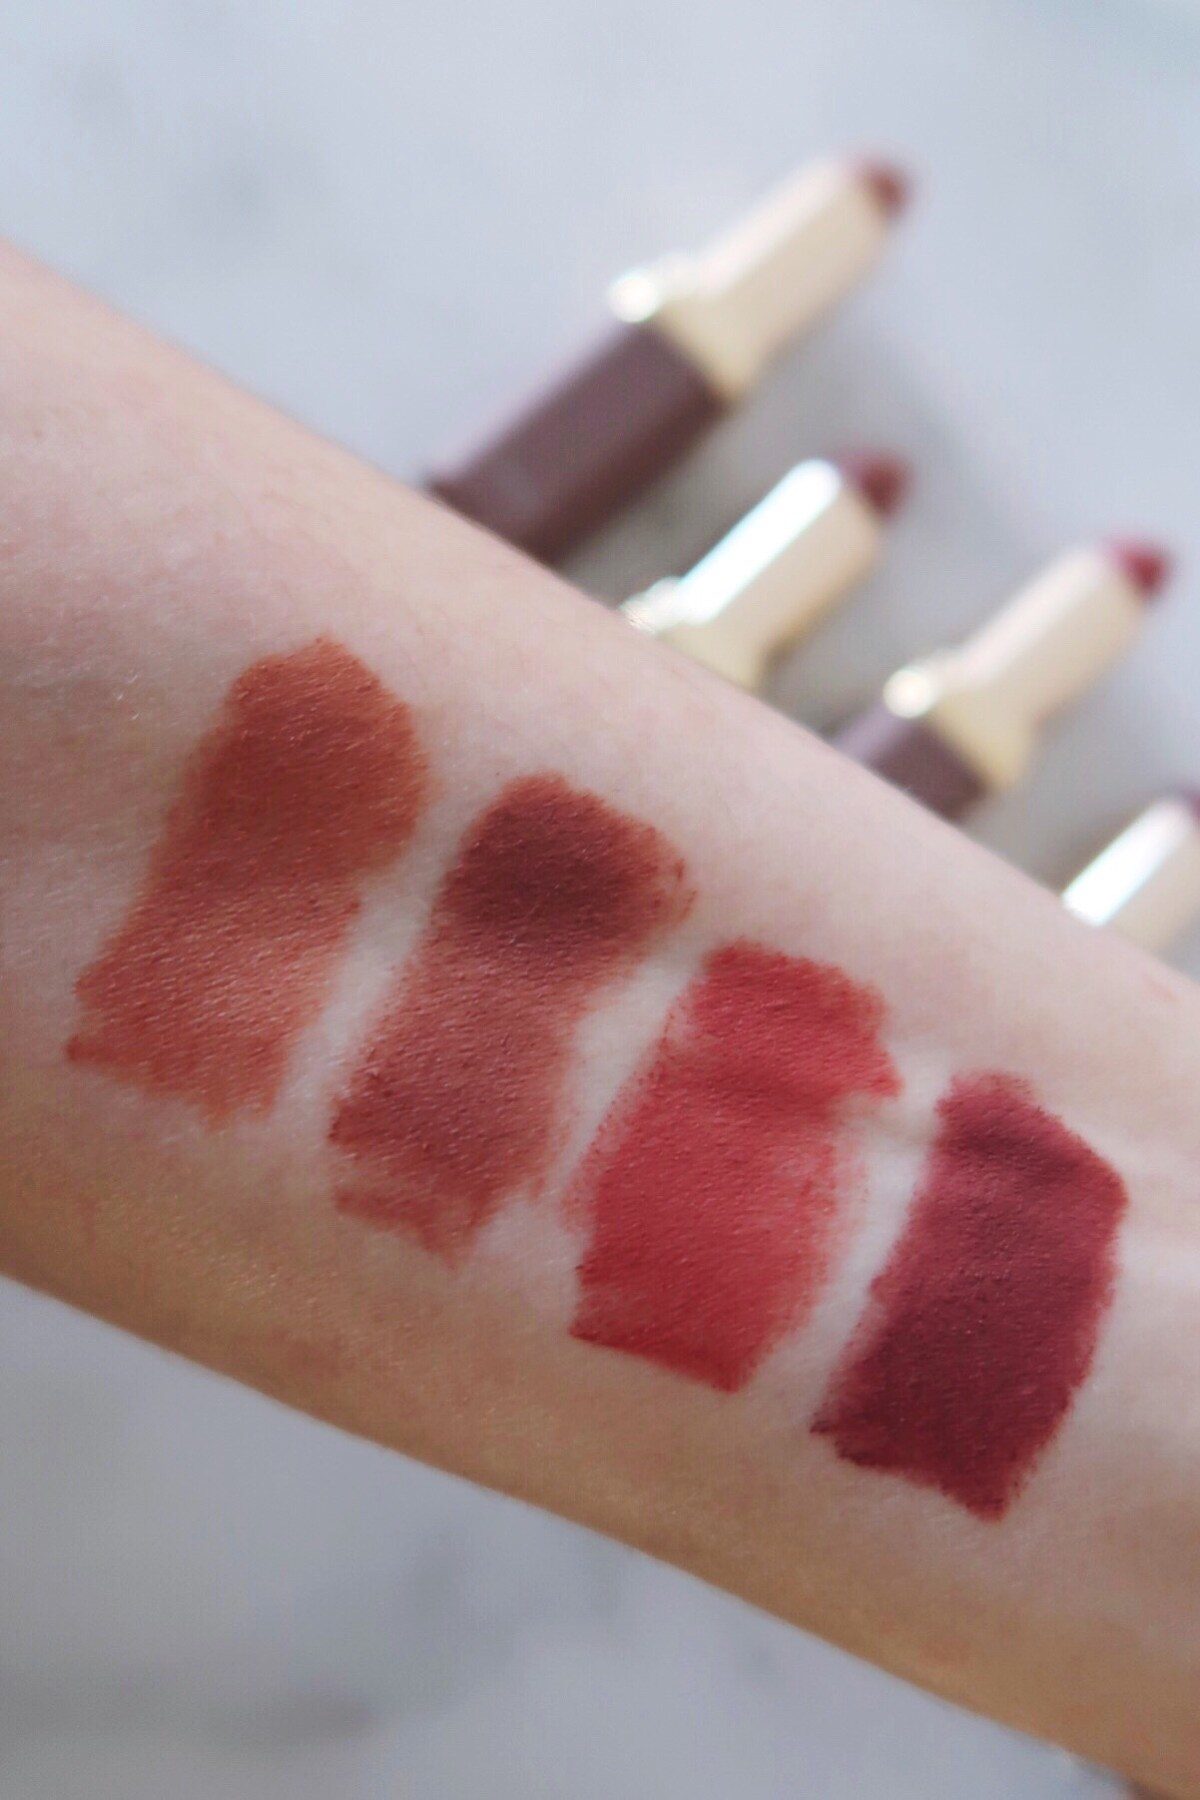 Drugstore Matte Lipstick Review - L'Oreal Colour Riche Ultra Matte Lipstick swatches on skin in natural daylight. From left to right: 983 Utmost Taupe, 978 All Out Pout, 977 Passionate Pink, 980 Rebel Rouge